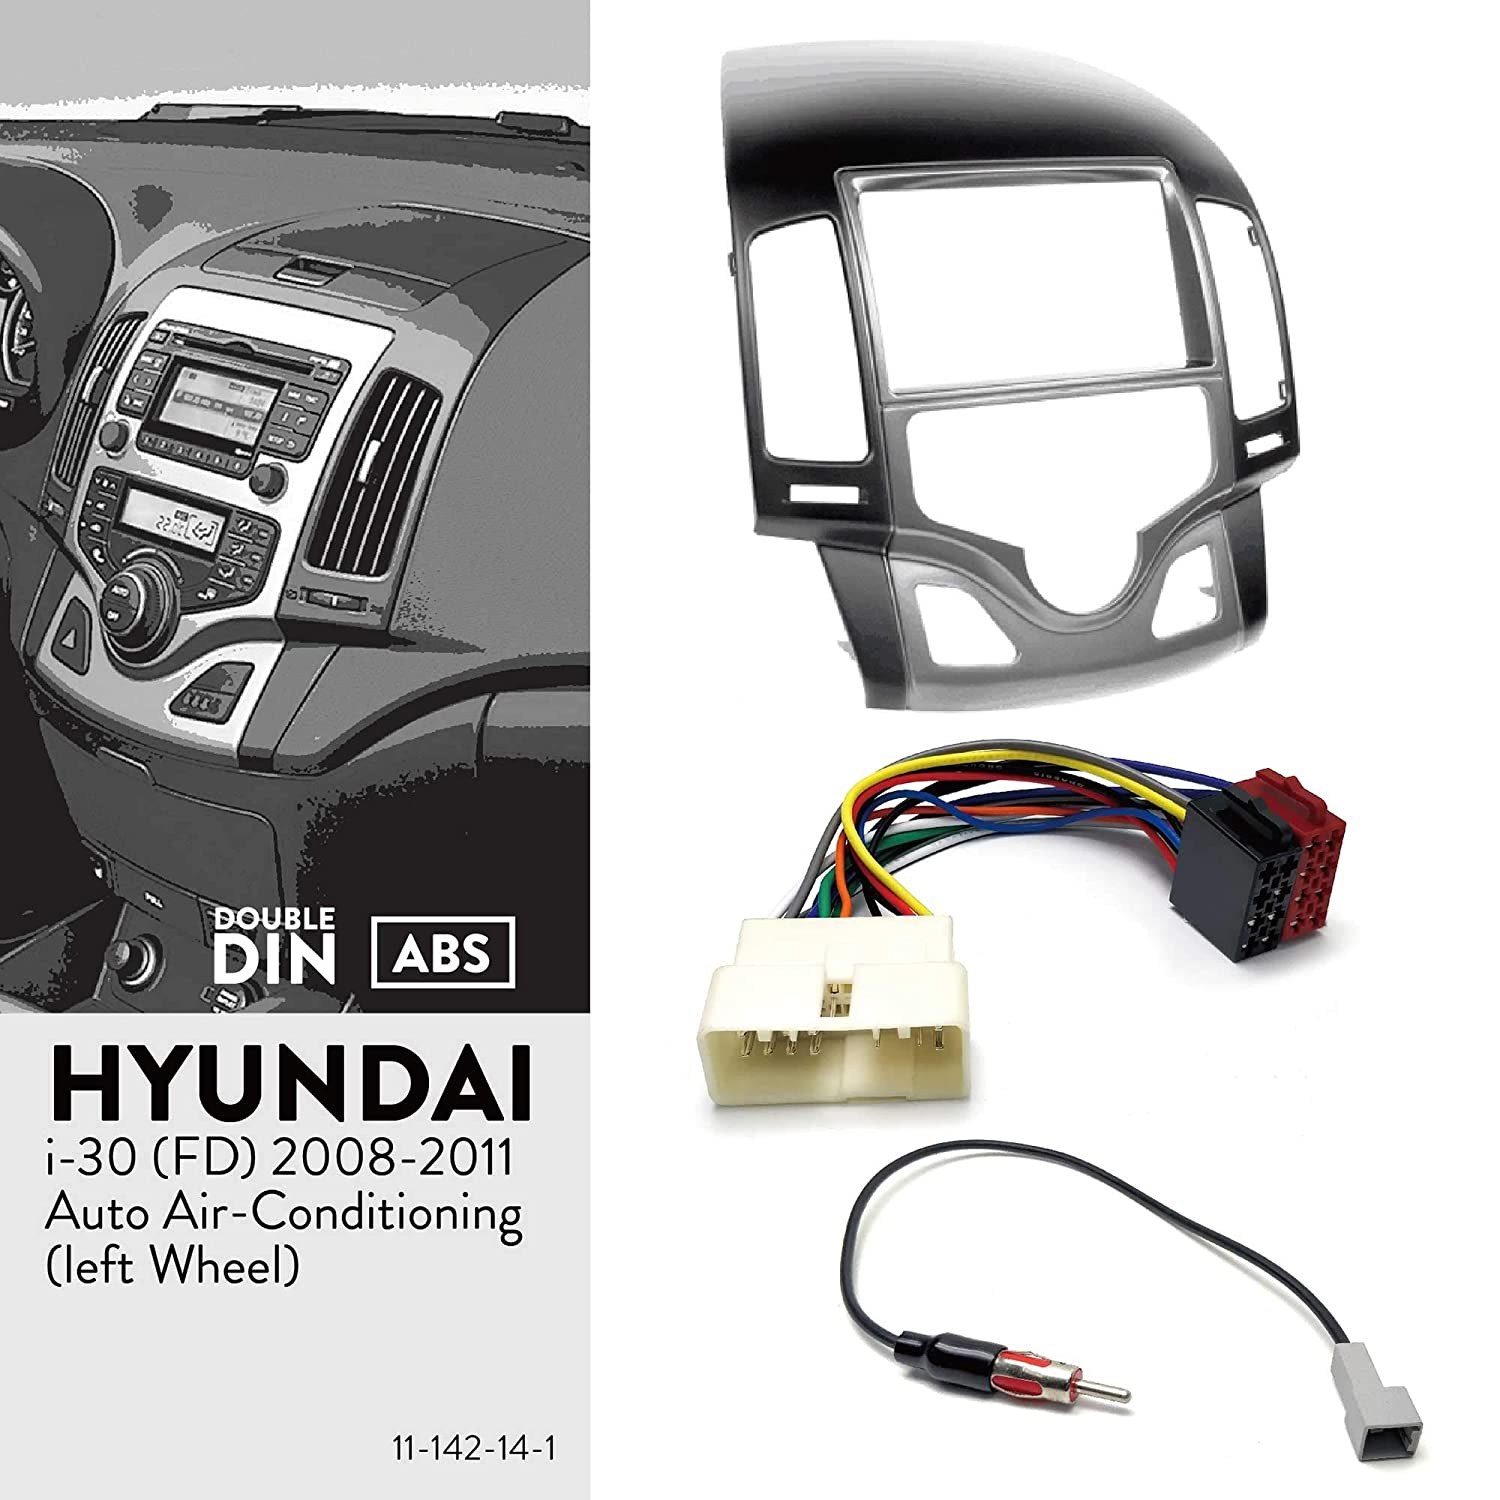 FD ISO Harness Antenna Adaptor for Hyundai i-30 2008-2011 UGAR 11-142 Fascia Kit